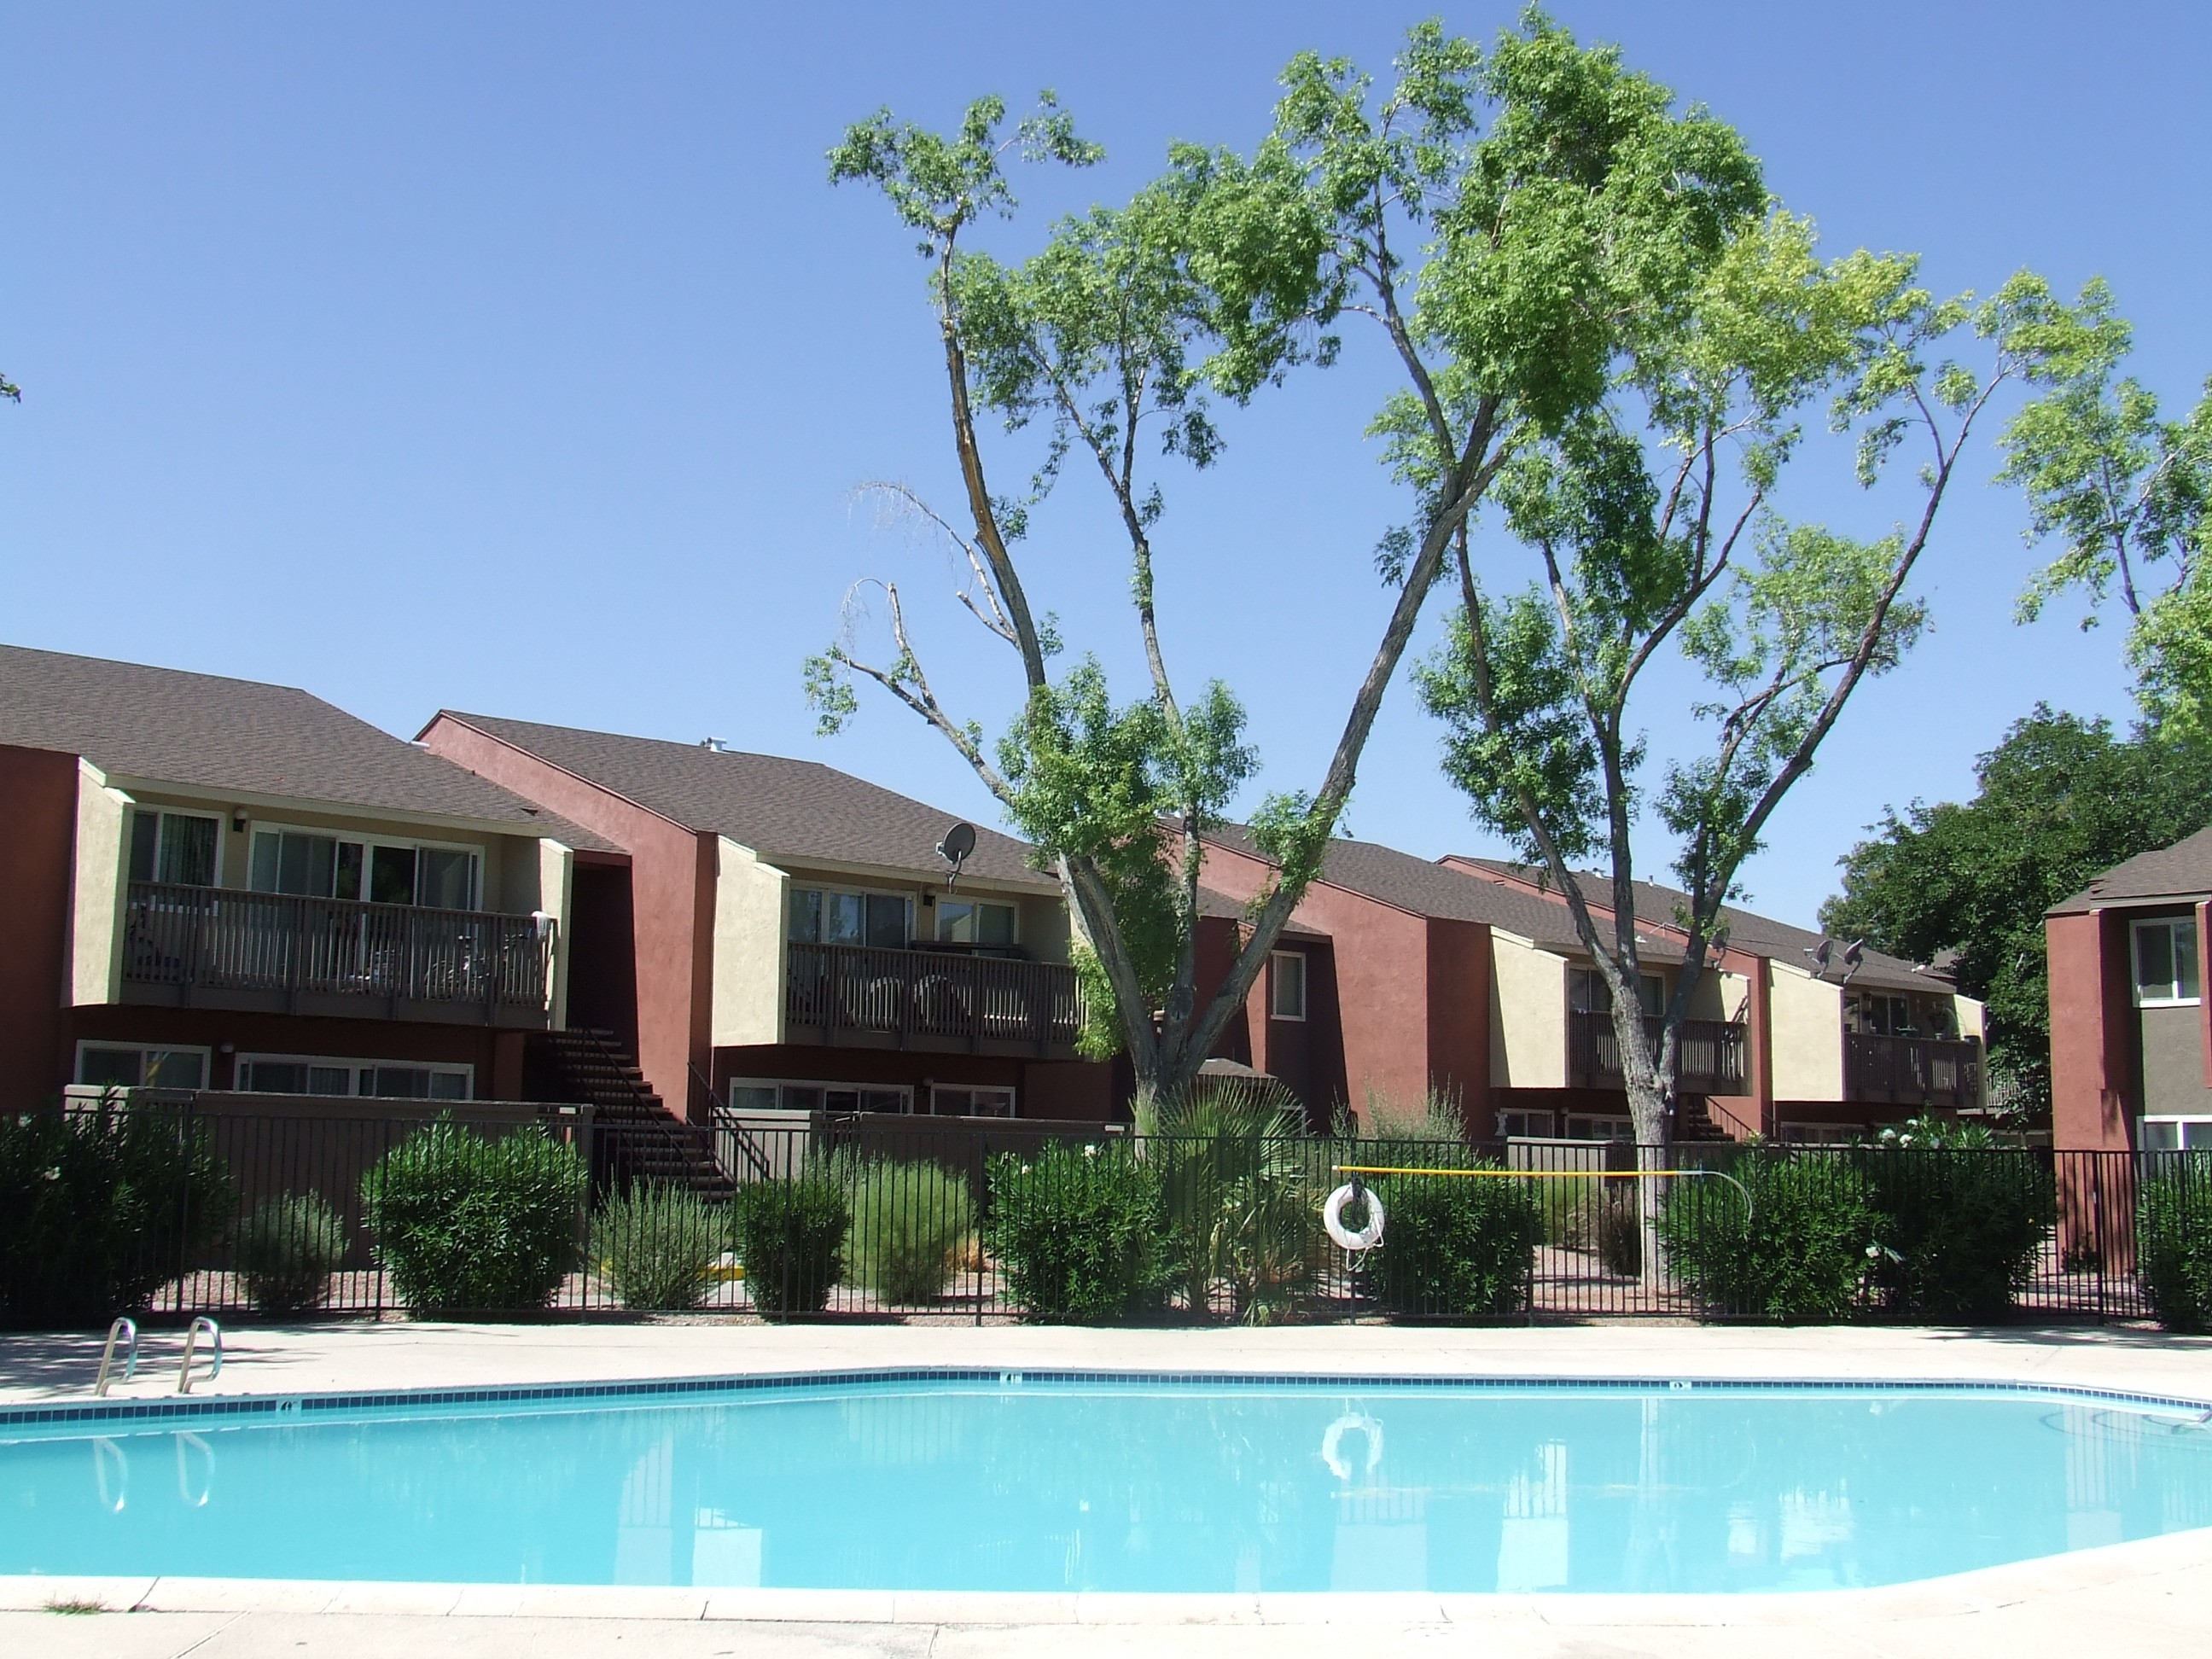 3823 S Maryland Pkwy 2 Bedroom Apartment for Rent for $670 month